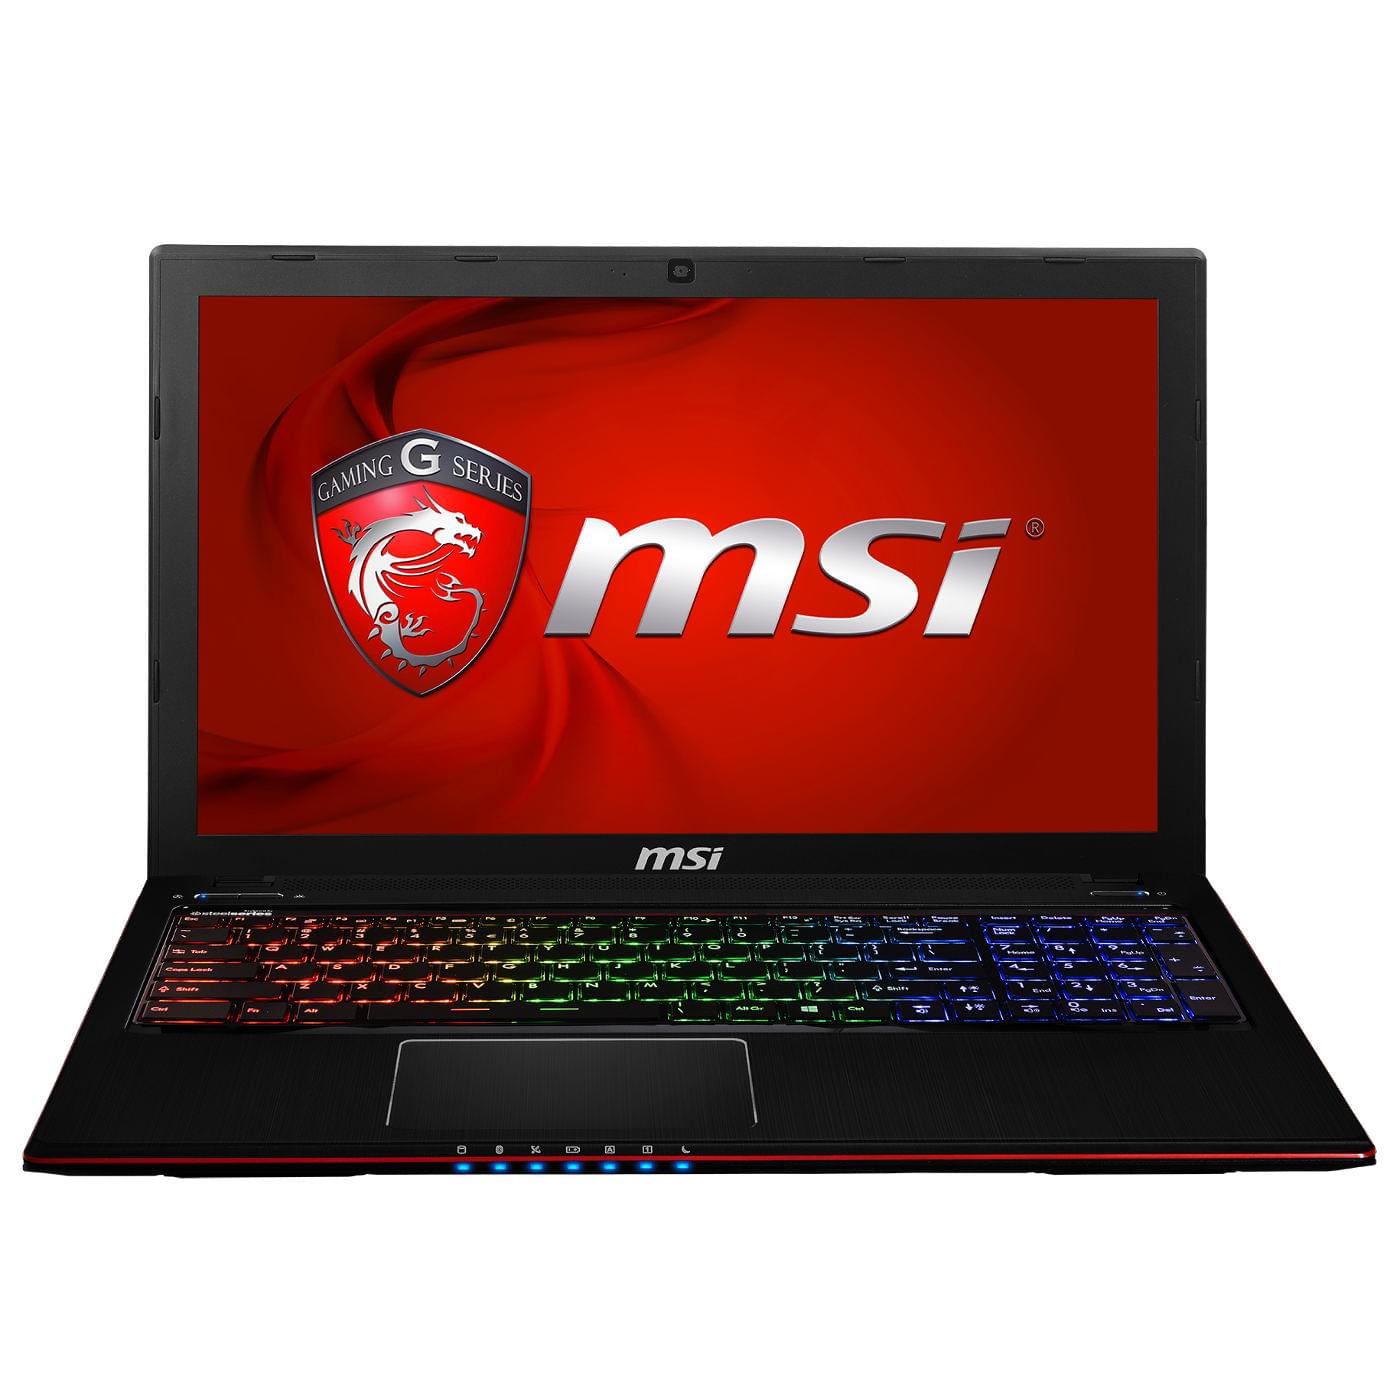 MSI 9S7-16GF11-416 - PC portable MSI - Cybertek.fr - 0